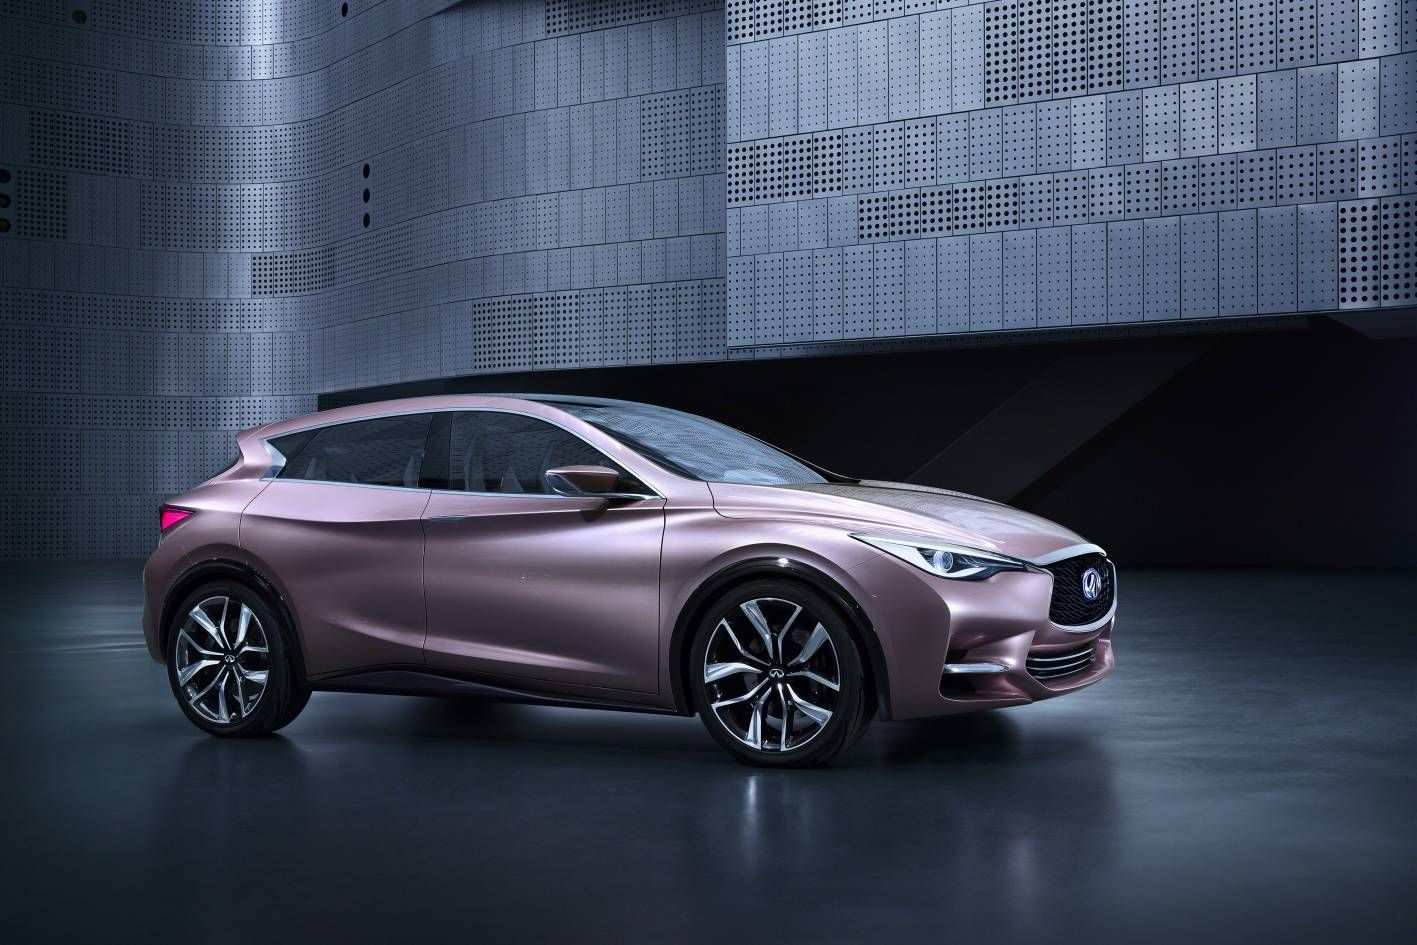 98 The Best 2020 Infiniti Lineup Release Date